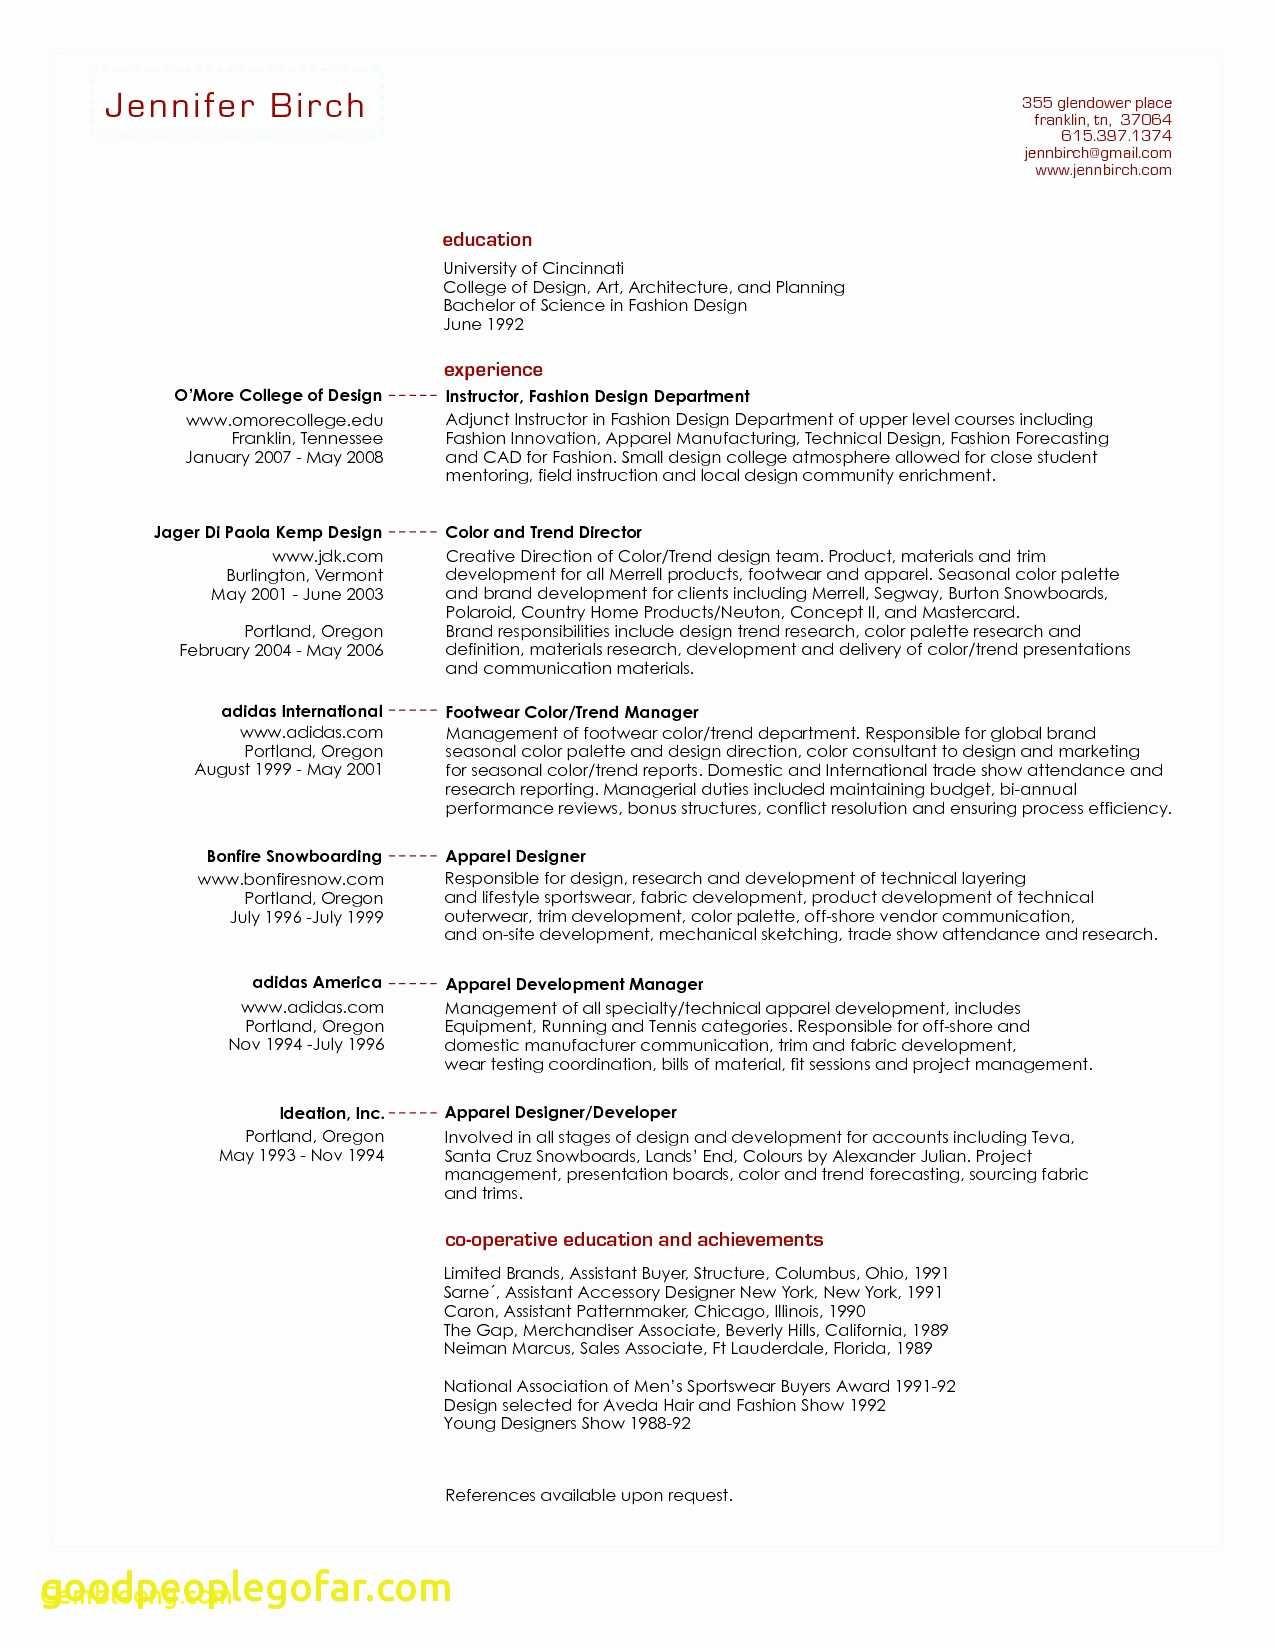 helpdesk resume template Collection-Global Service Desk New Helpdesk Resume Template New sorority Resume 0d 3-n